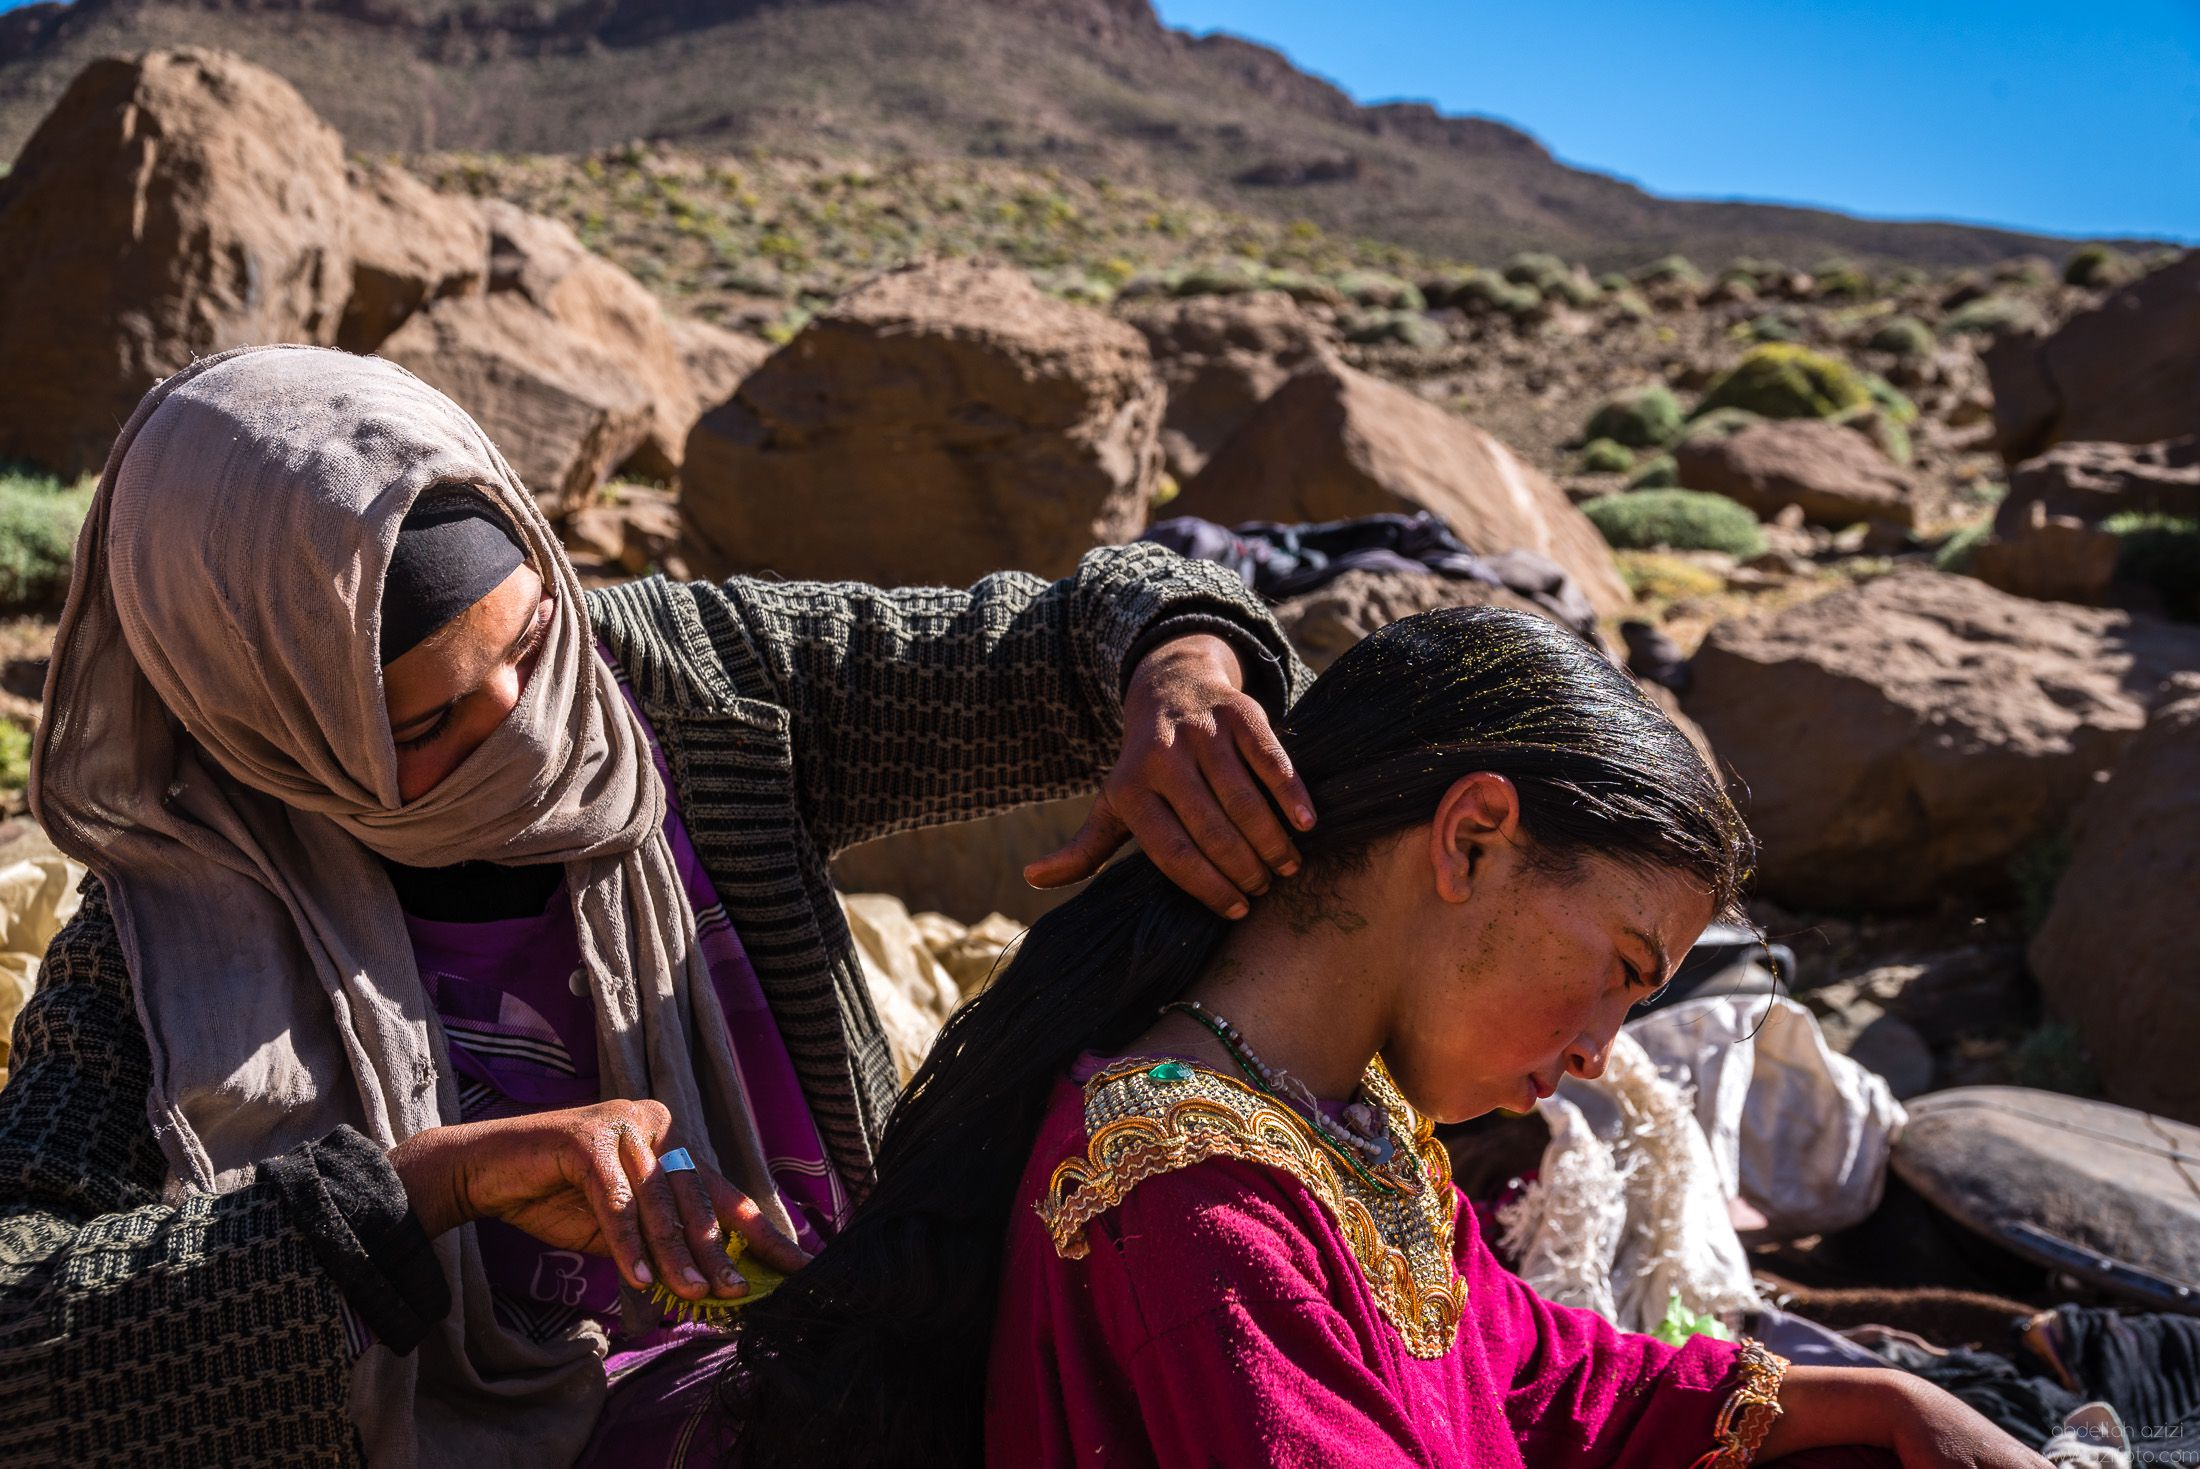 Brushing hair with Henna - Ait Atta Nomads